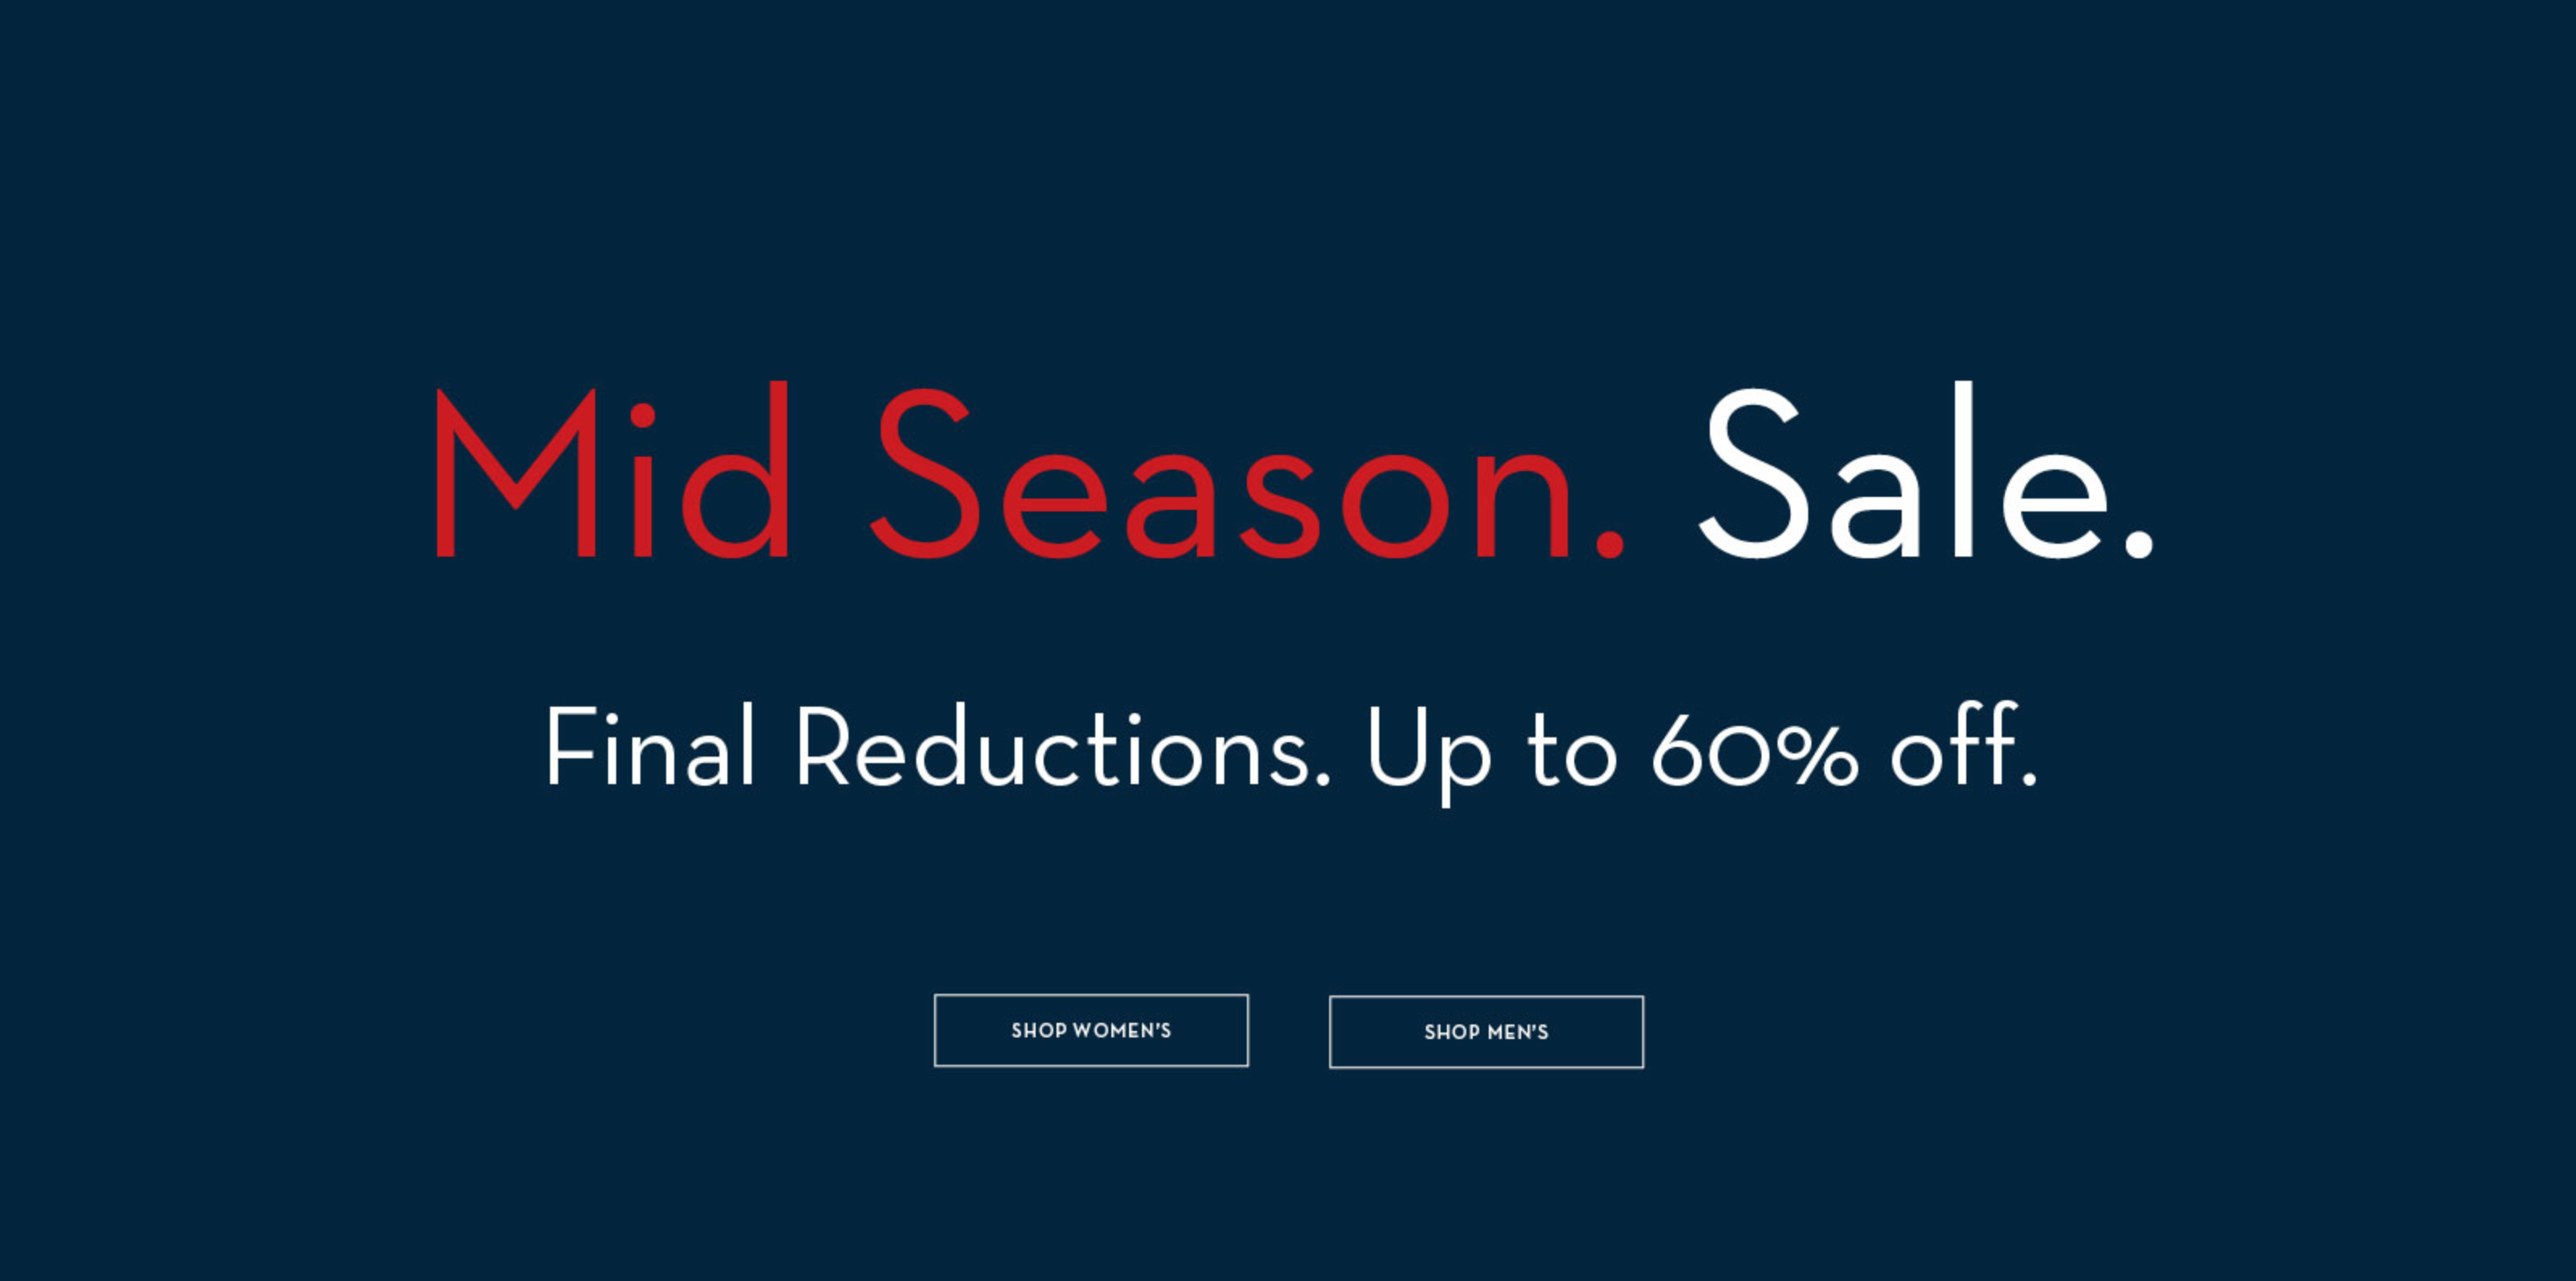 Crew Clothing: Mid Season Sale up to 60% off